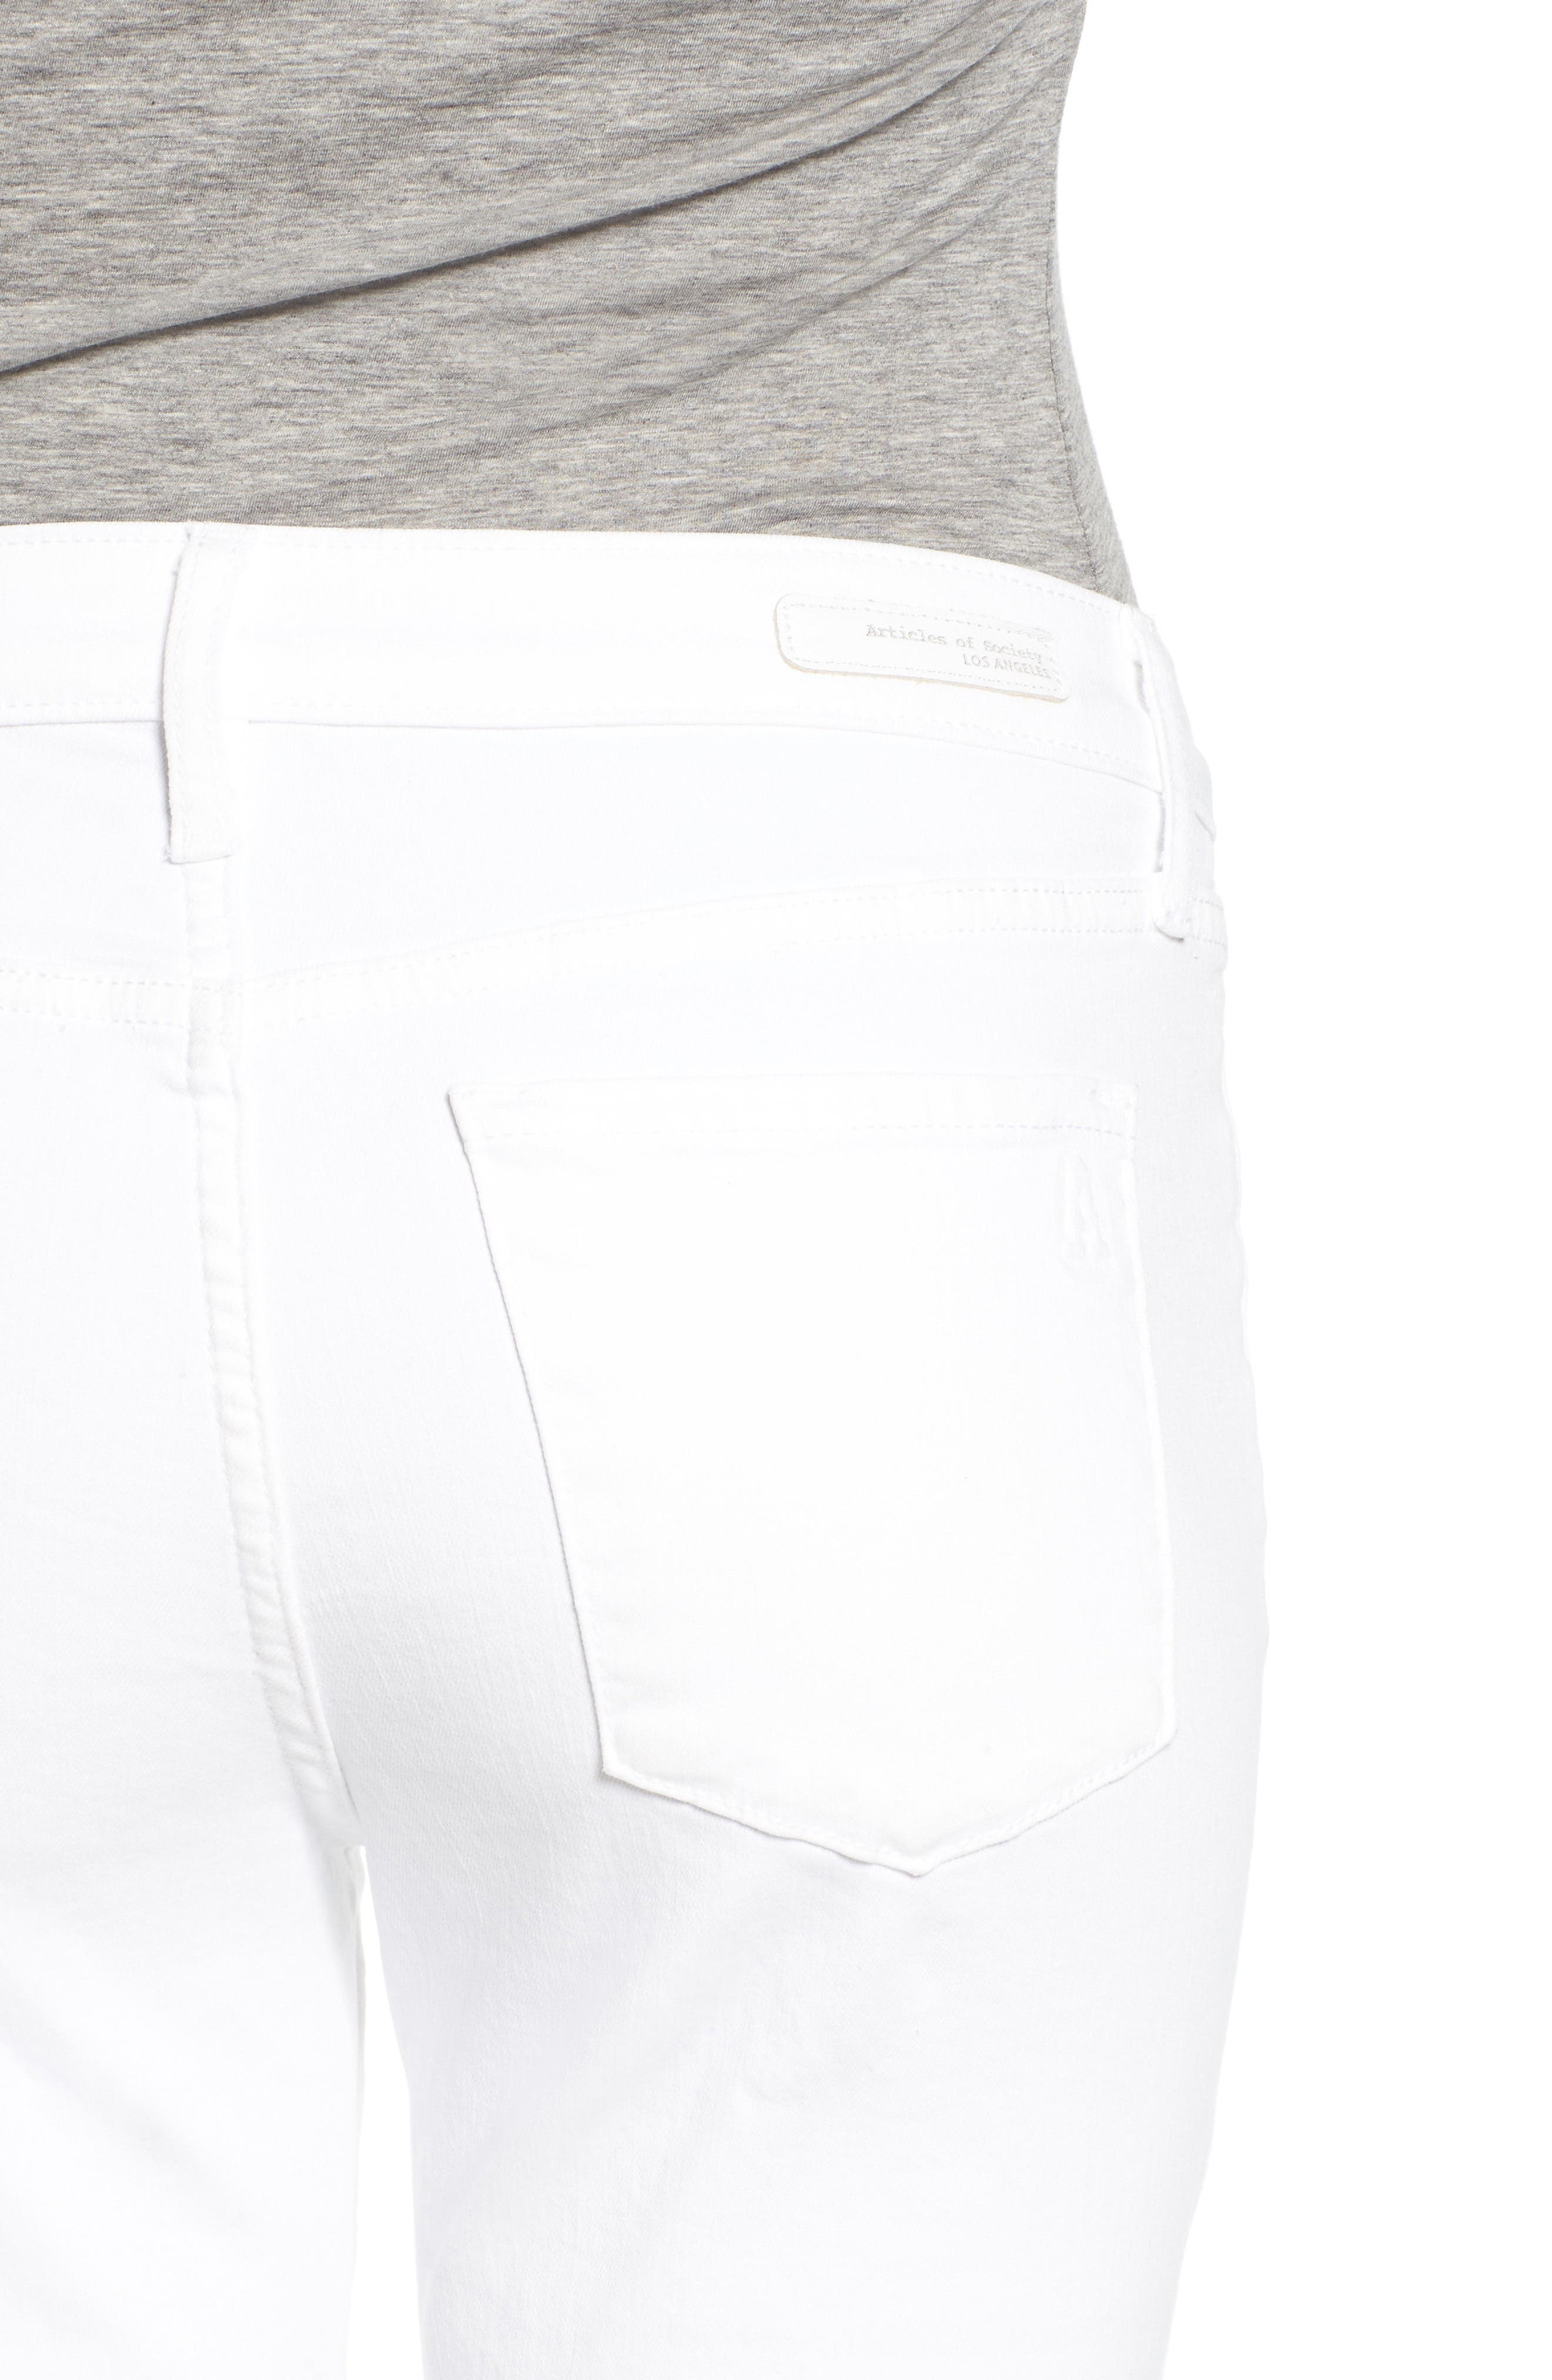 Carly Skinny Crop Jeans,                             Alternate thumbnail 4, color,                             110